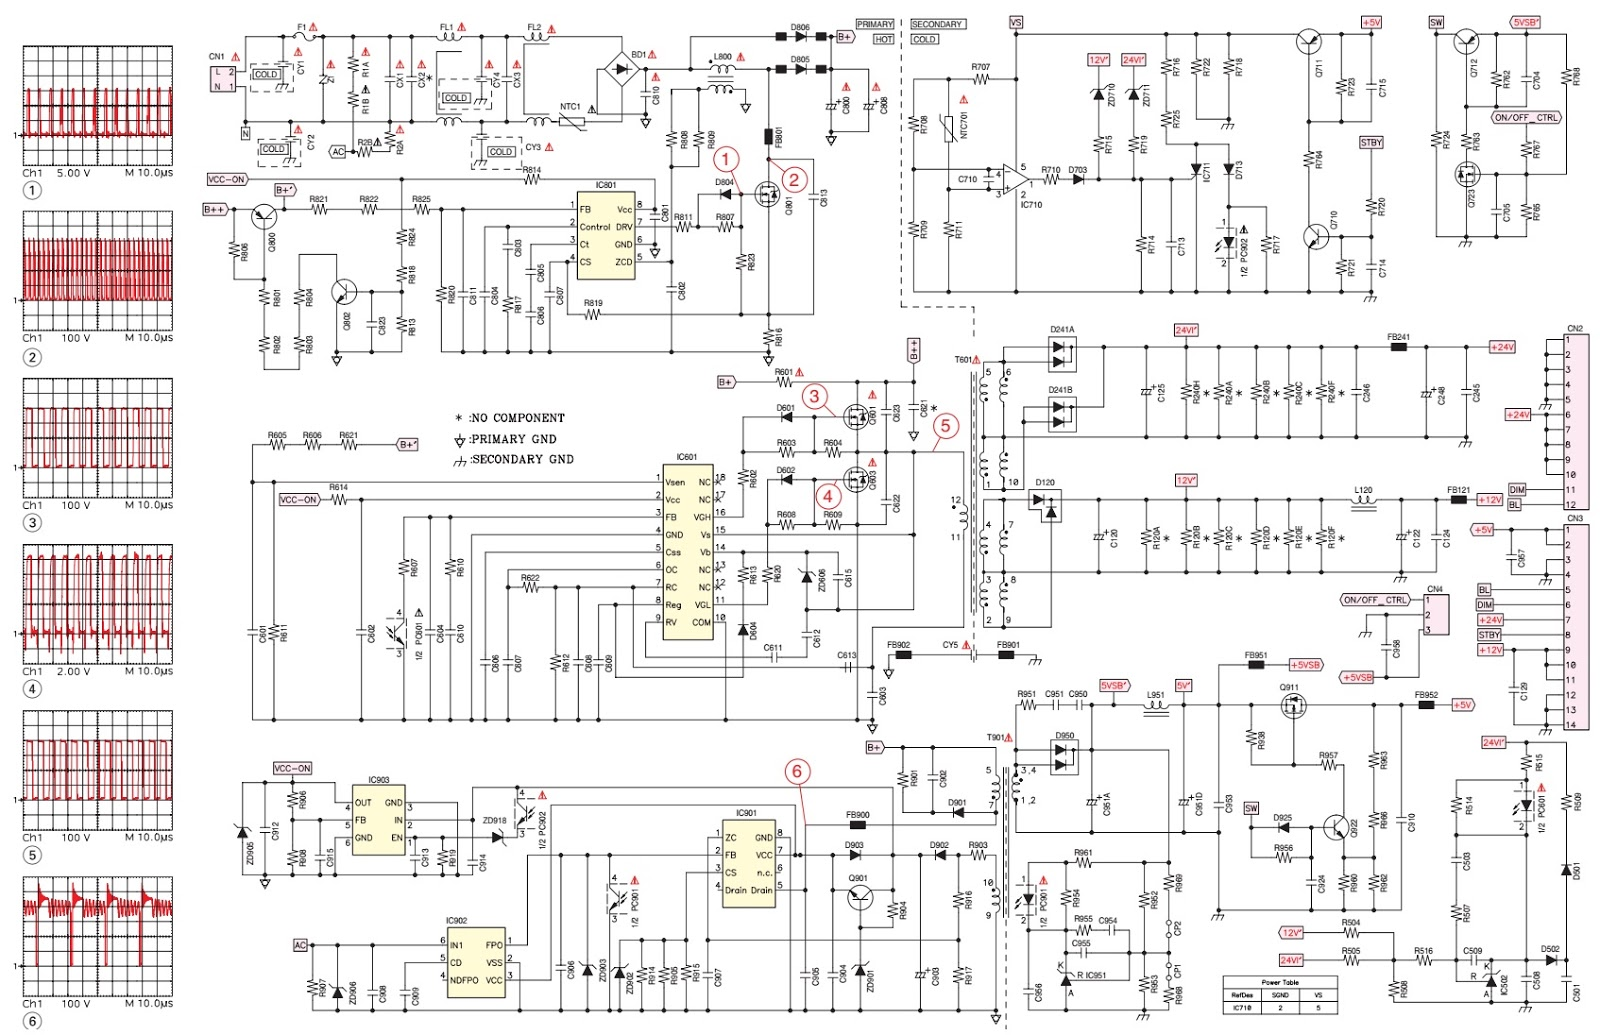 small resolution of grundig lcd tv smps circuit diagram dps 145pp 133 electro help inverter pcb board circuit diagram inverter pcb board circuit diagram